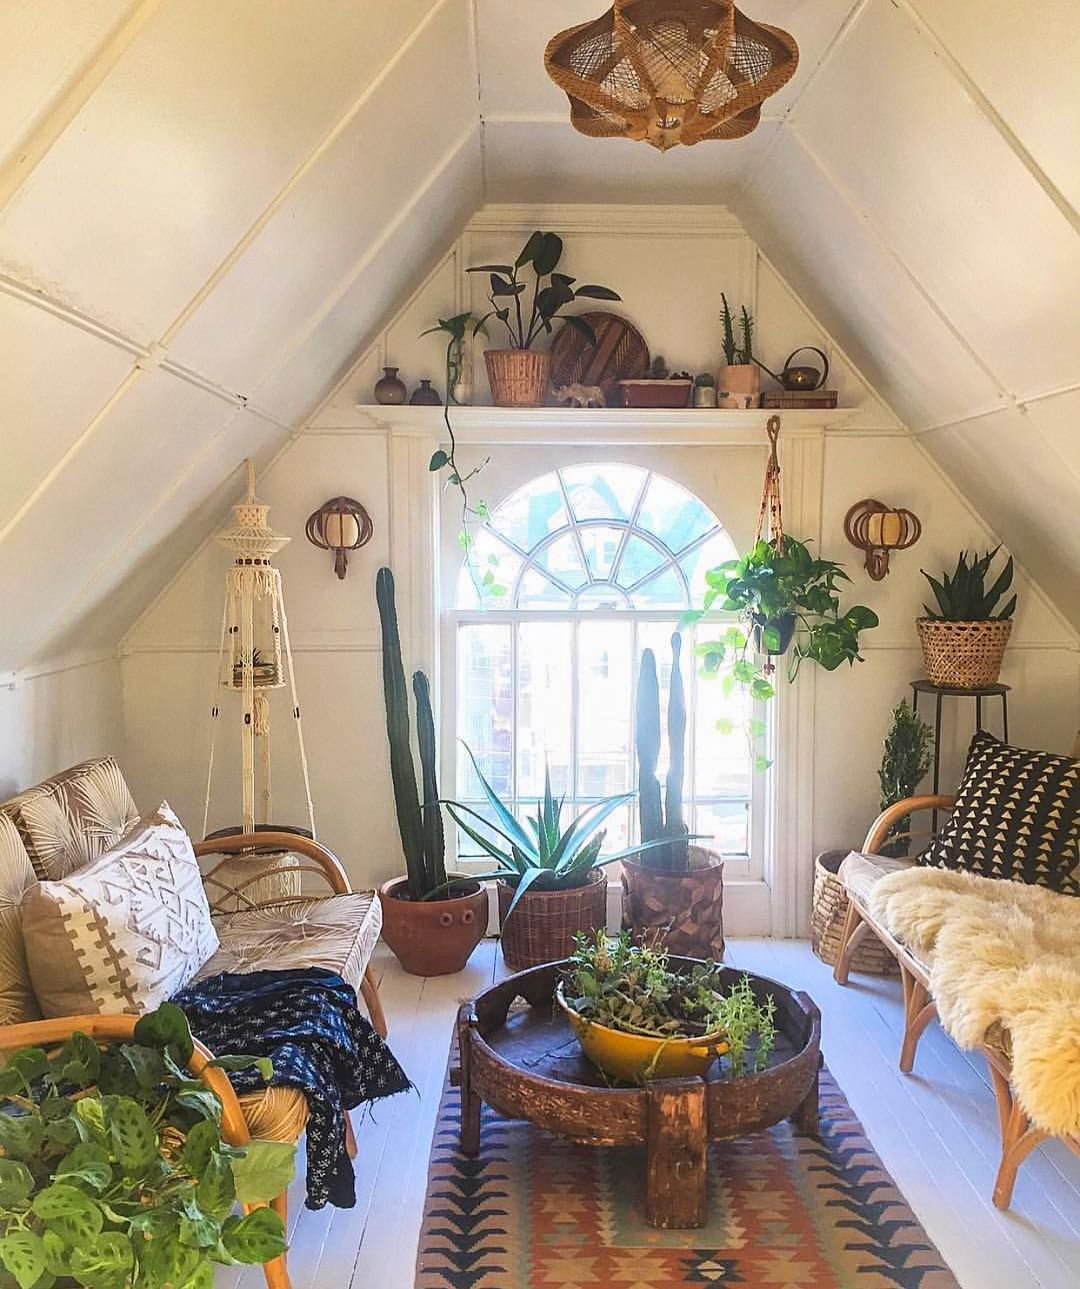 14 Living Room Window Designs Decorating Ideas: See This Instagram Photo By @spirits.of.life • 14.1k Likes